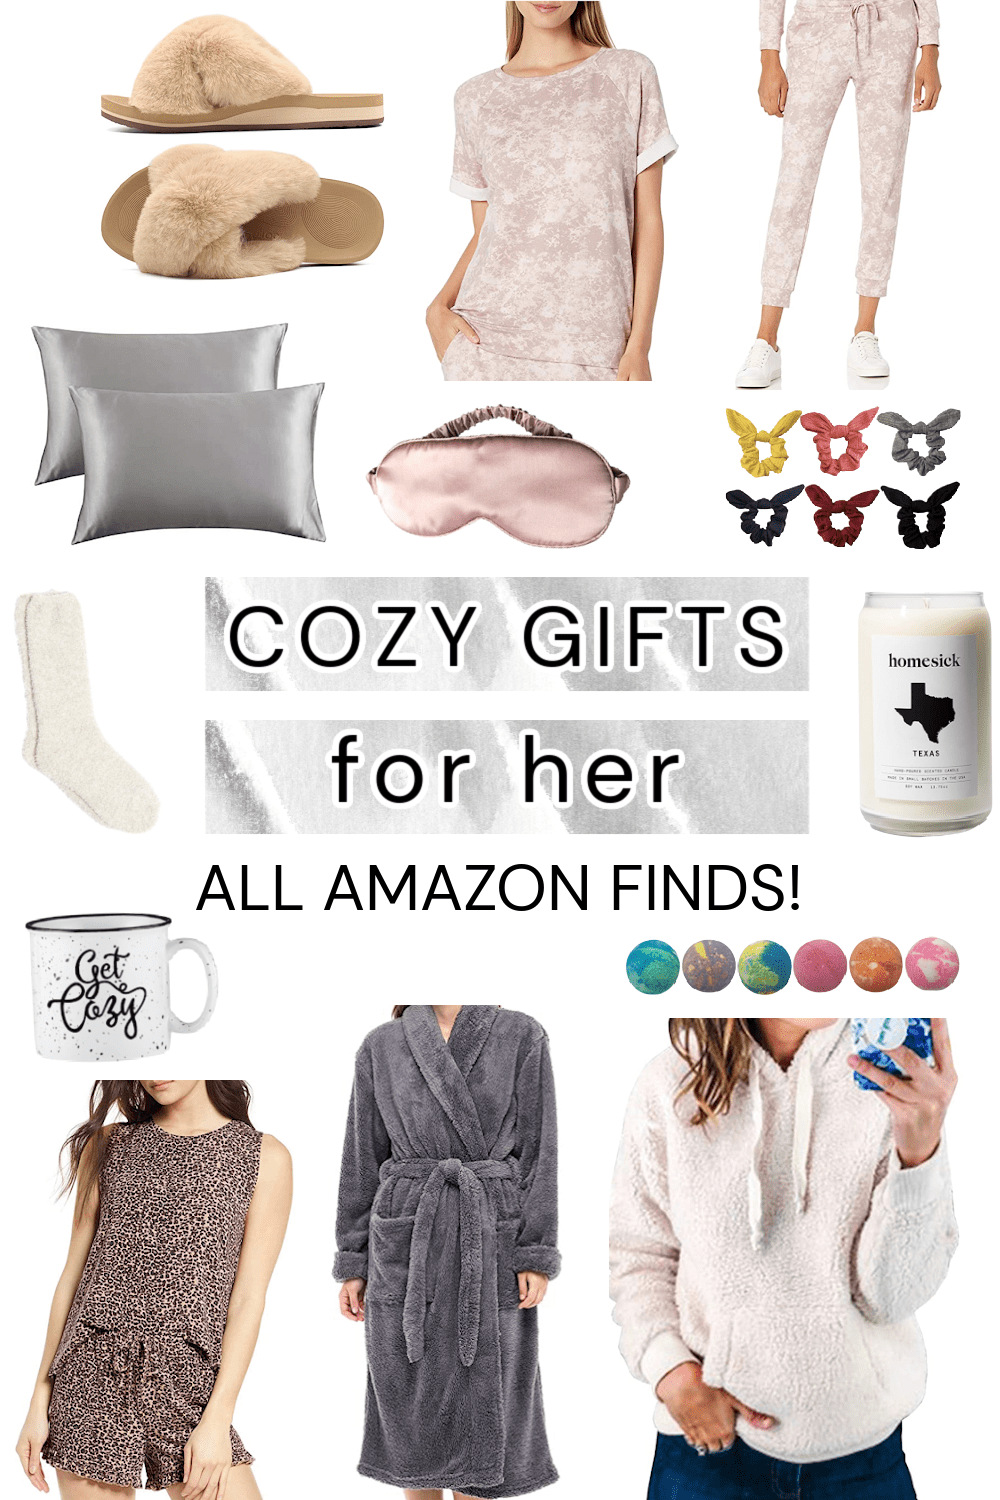 Houston lifestyle influencer Meg O. shares cozy gifts for her - all Amazon finds!